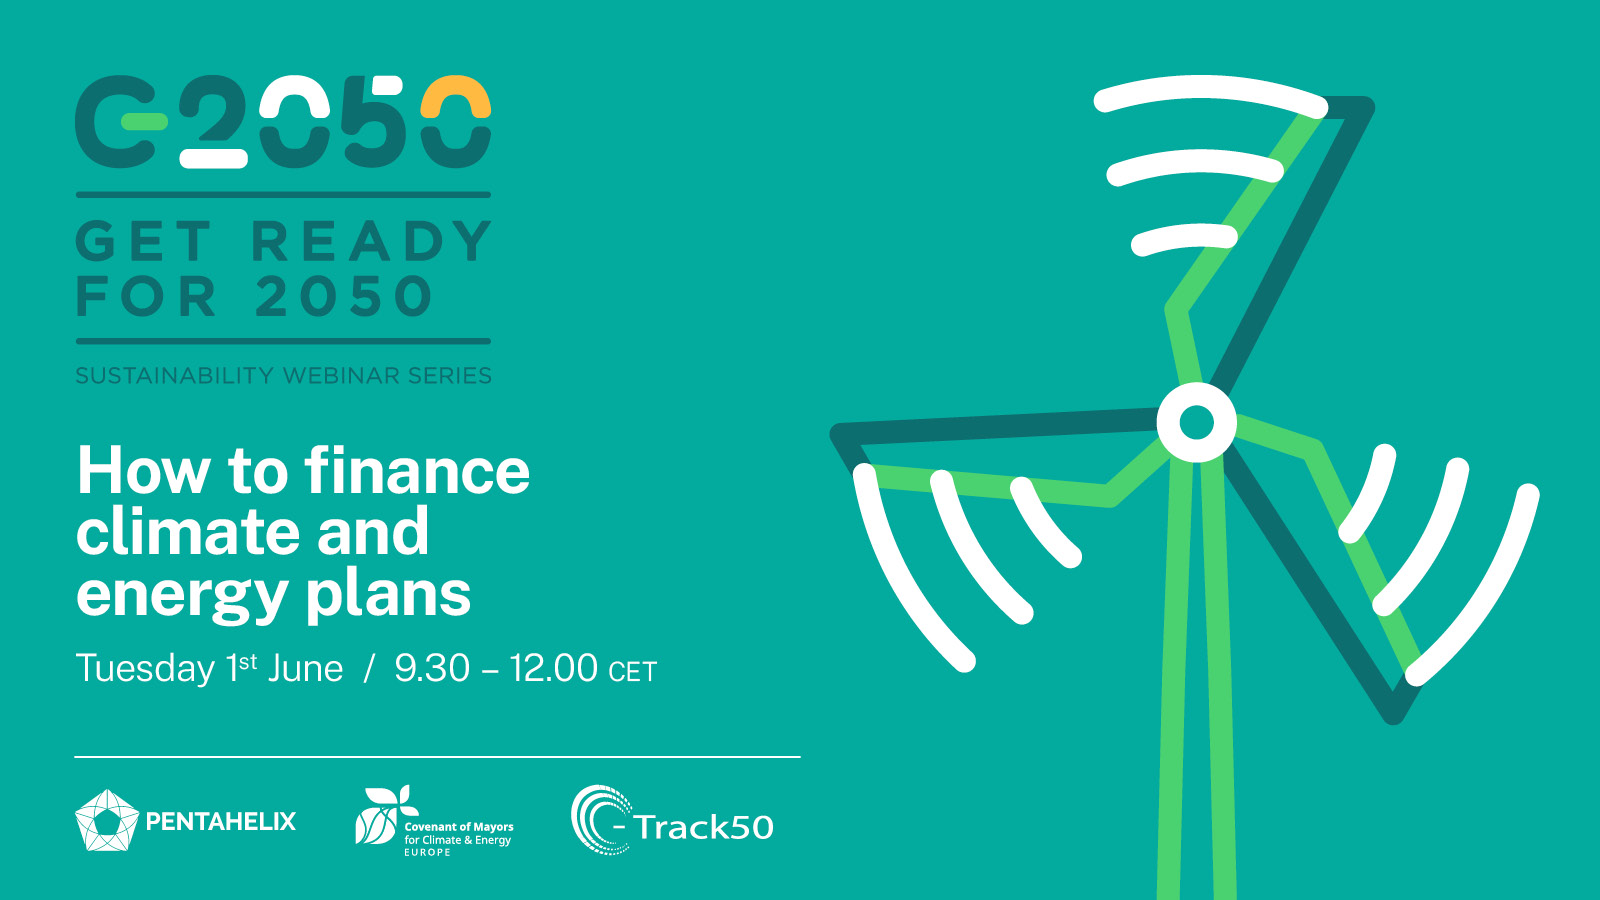 GET READY FOR 2050: How to Finance Climate and Energy Plans